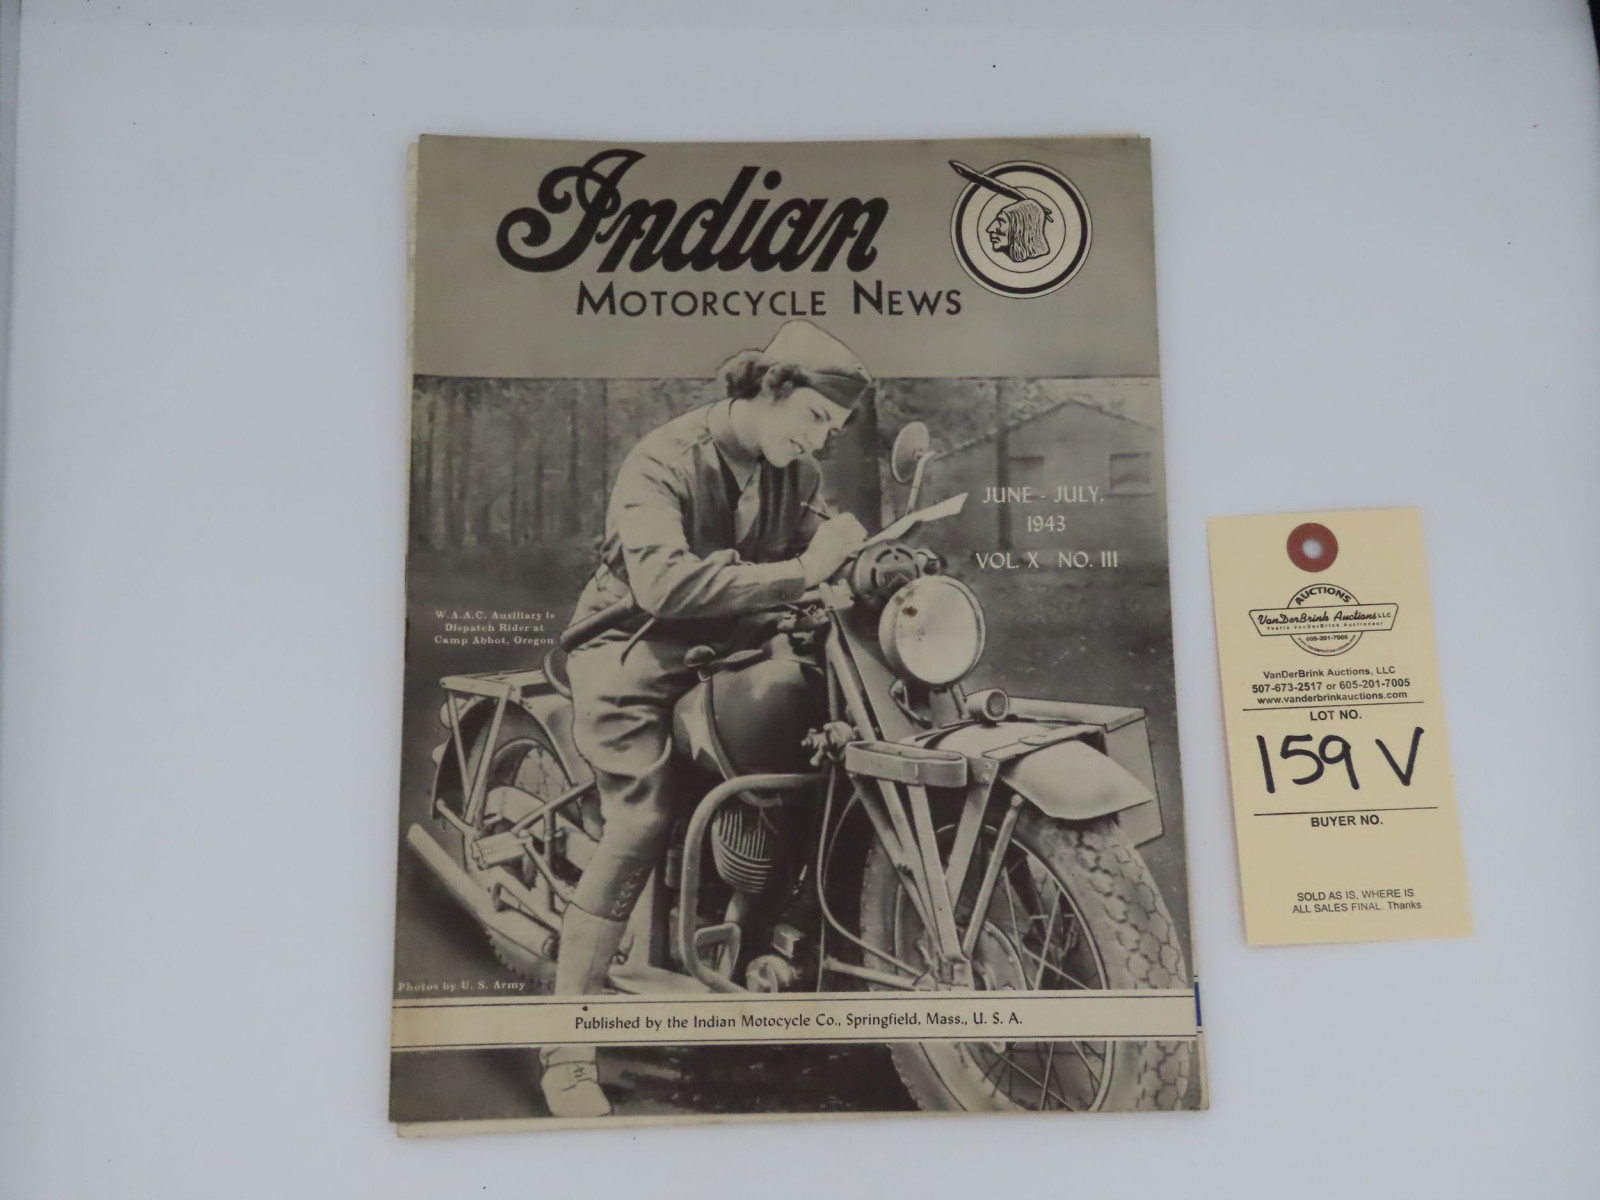 Indian Motorcycle News - 1943 - Image 5